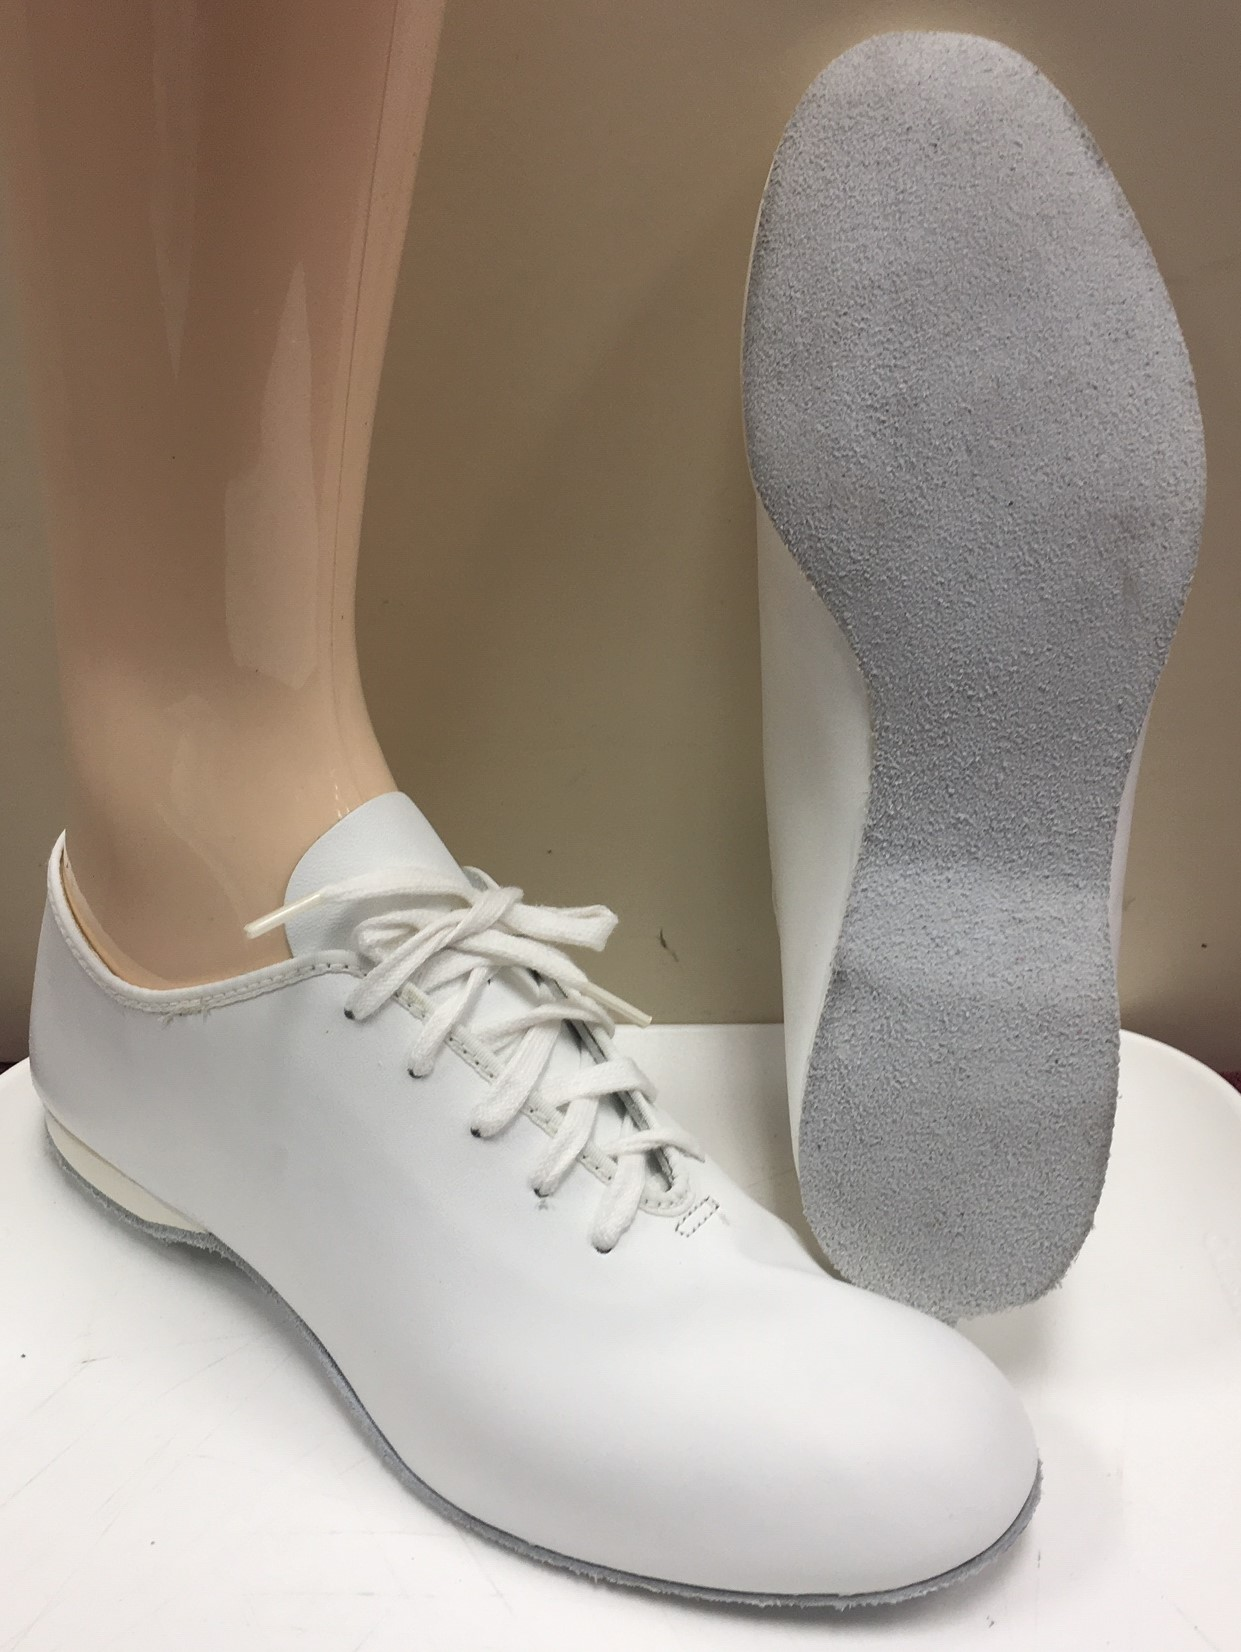 Barry's Women's Oxford Jazz Shoes